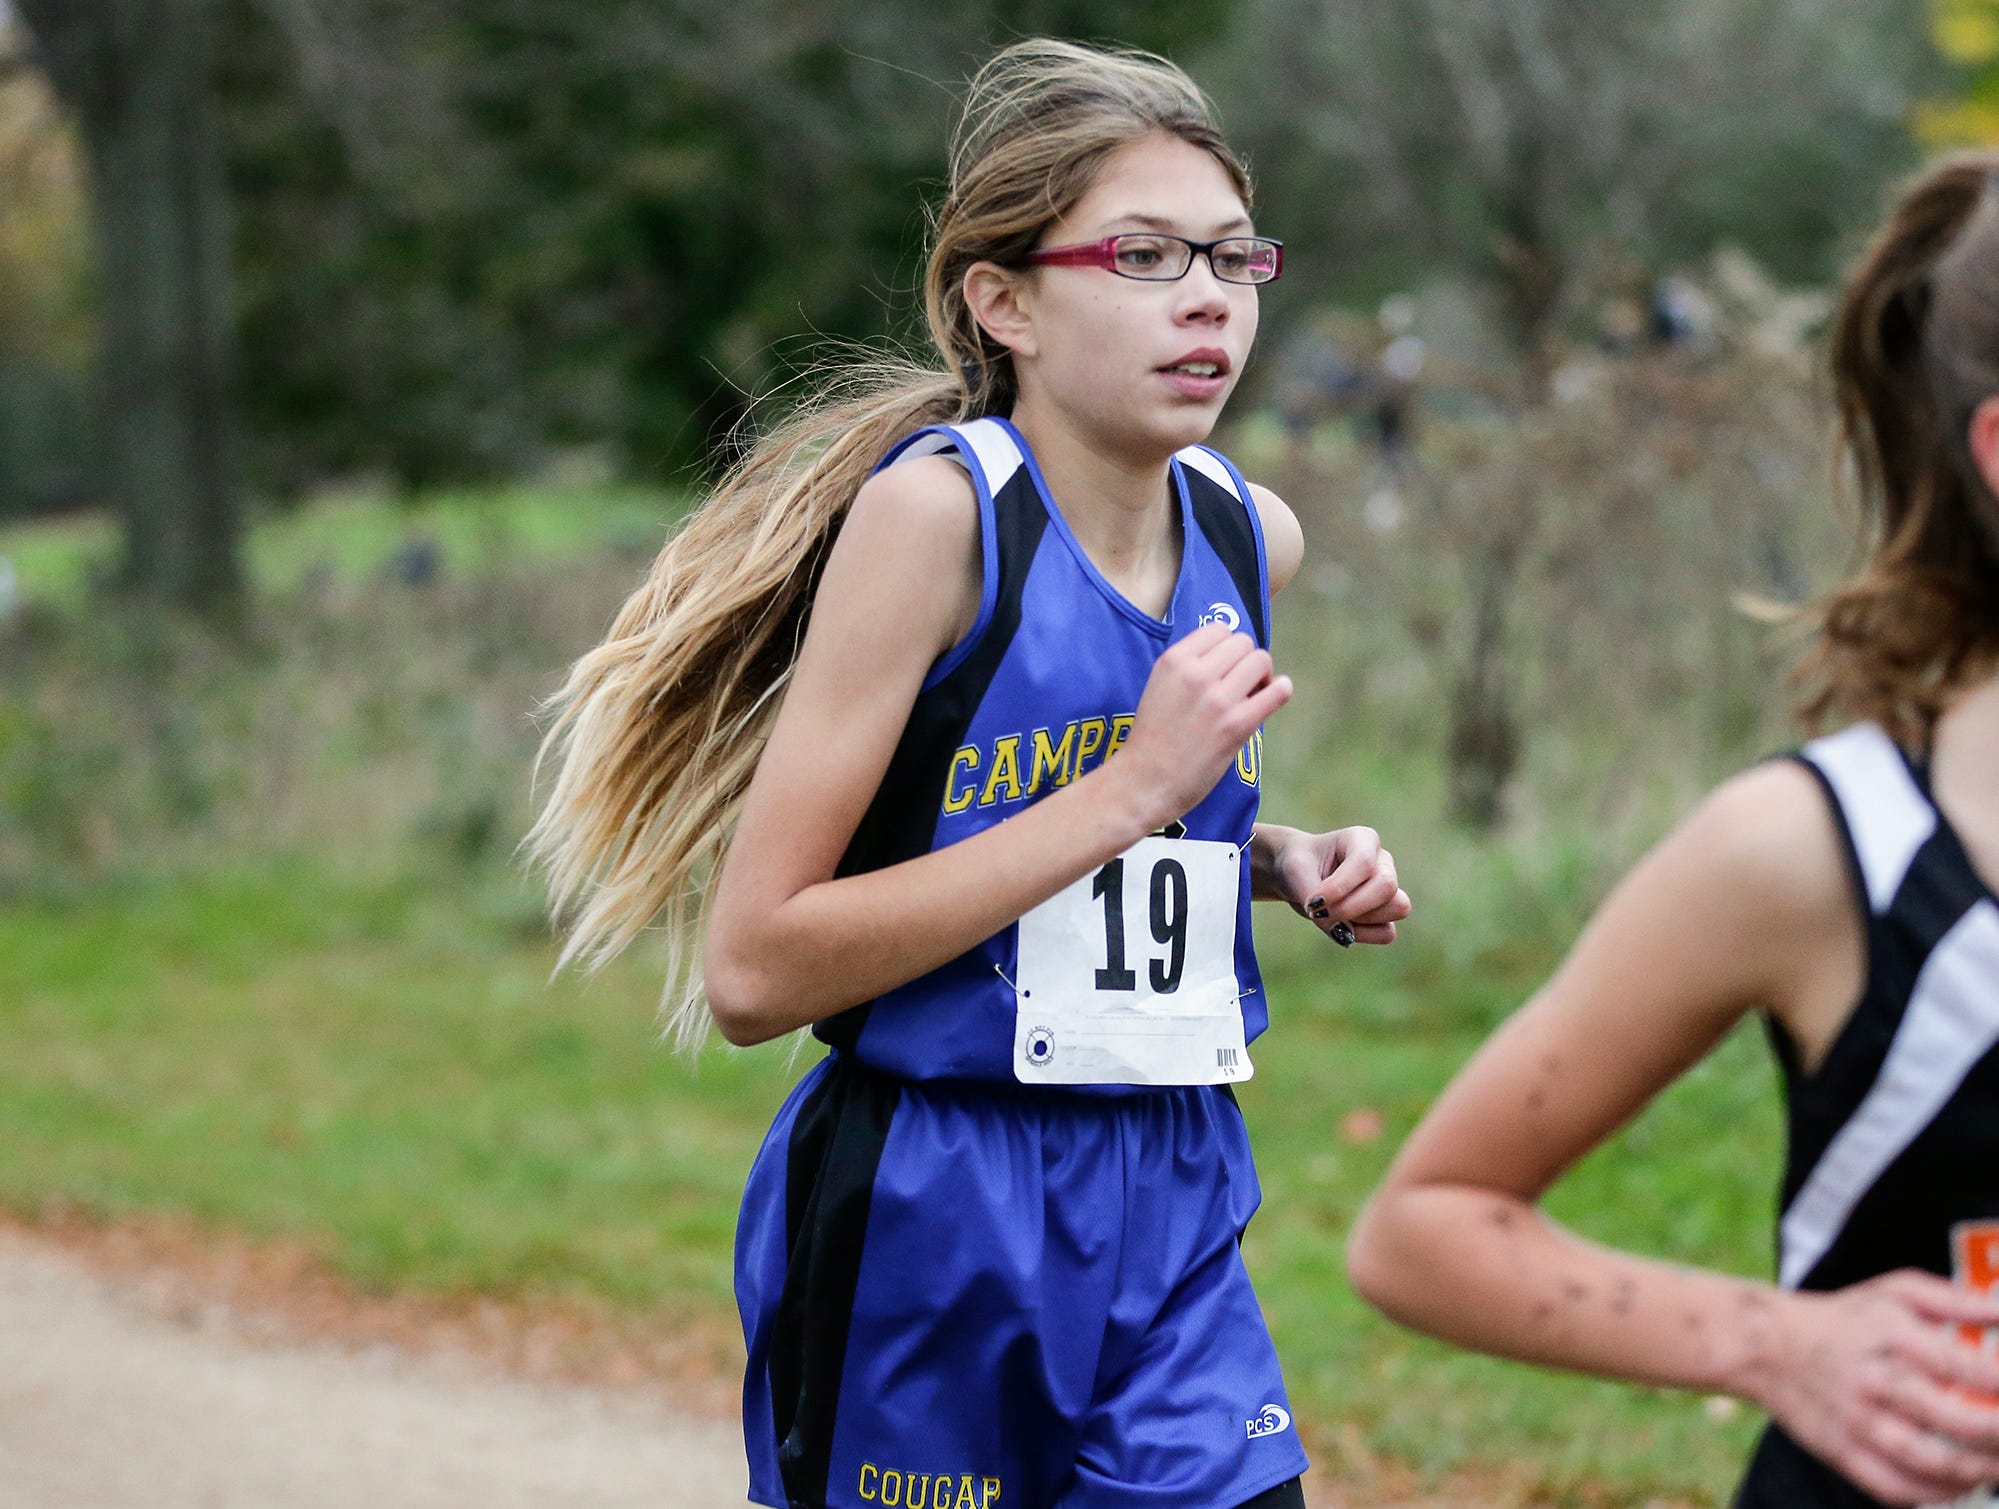 Campbellsport High School's Izzy Bente runs in the WIAA Division two Mayville sectional cross country meet at the Mayville golf course Friday, October 19, 2018. Doug Raflik/USA TODAY NETWORK-Wisconsin